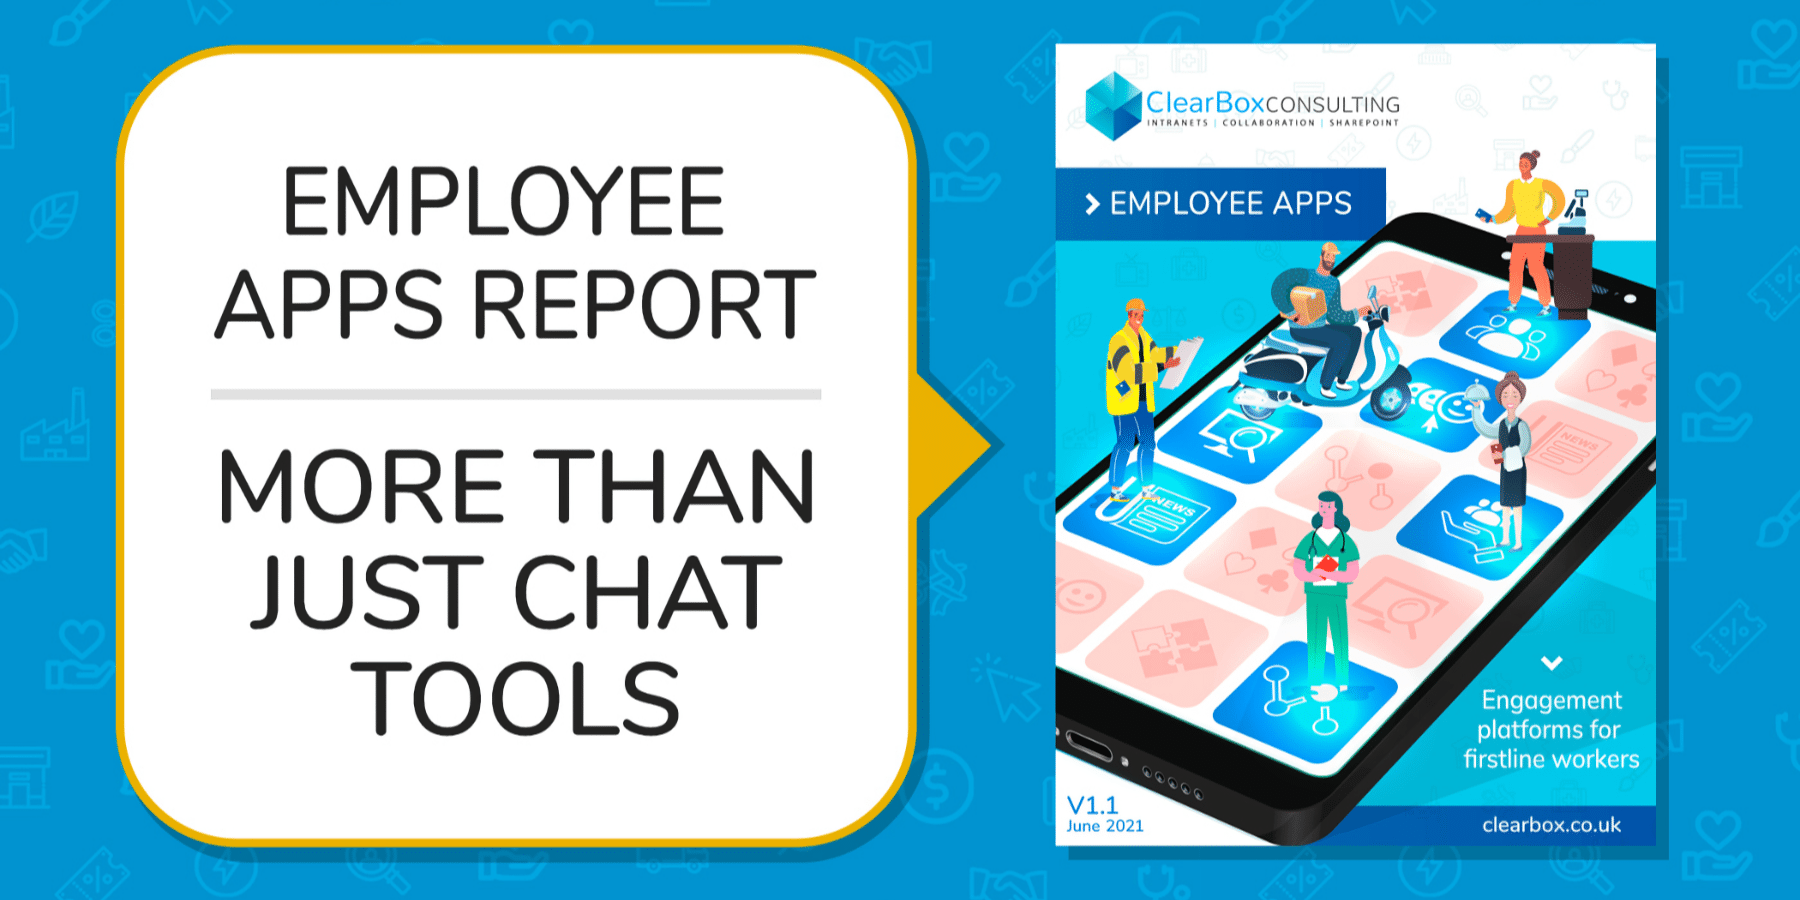 Employee apps - more than just chat tools.